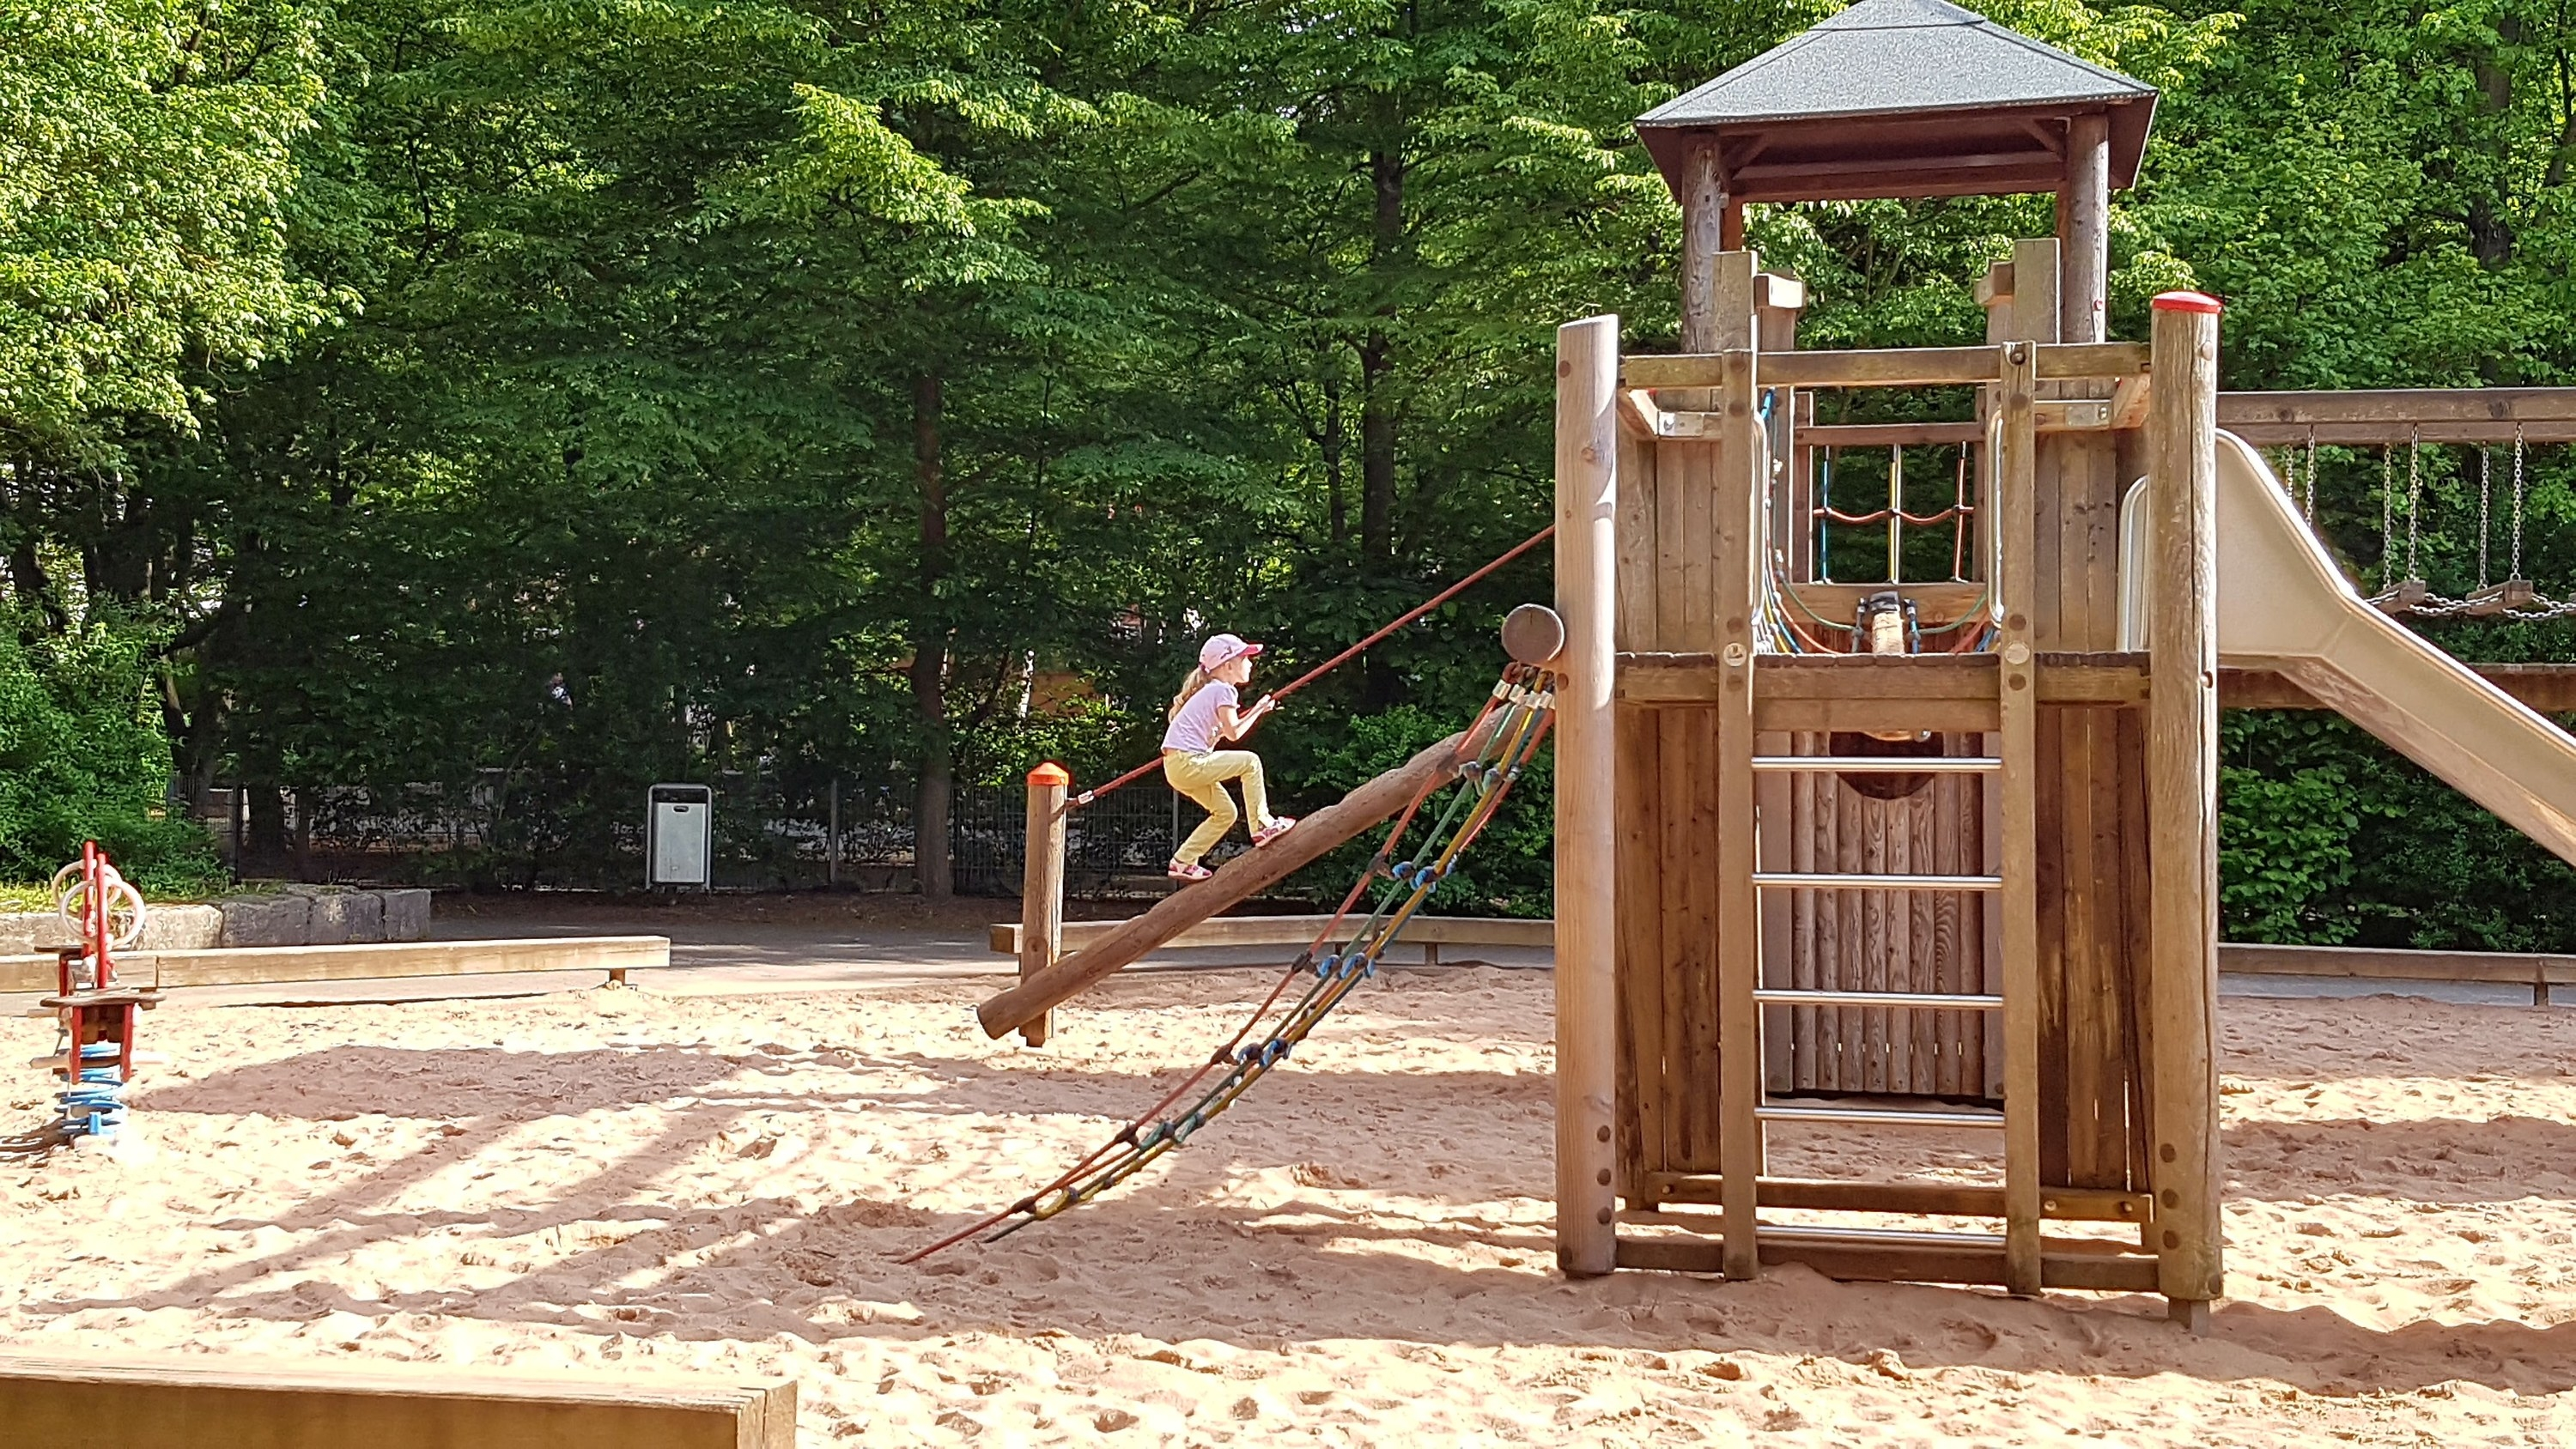 Photo of a girl climbing up the rope log of a wooden playground